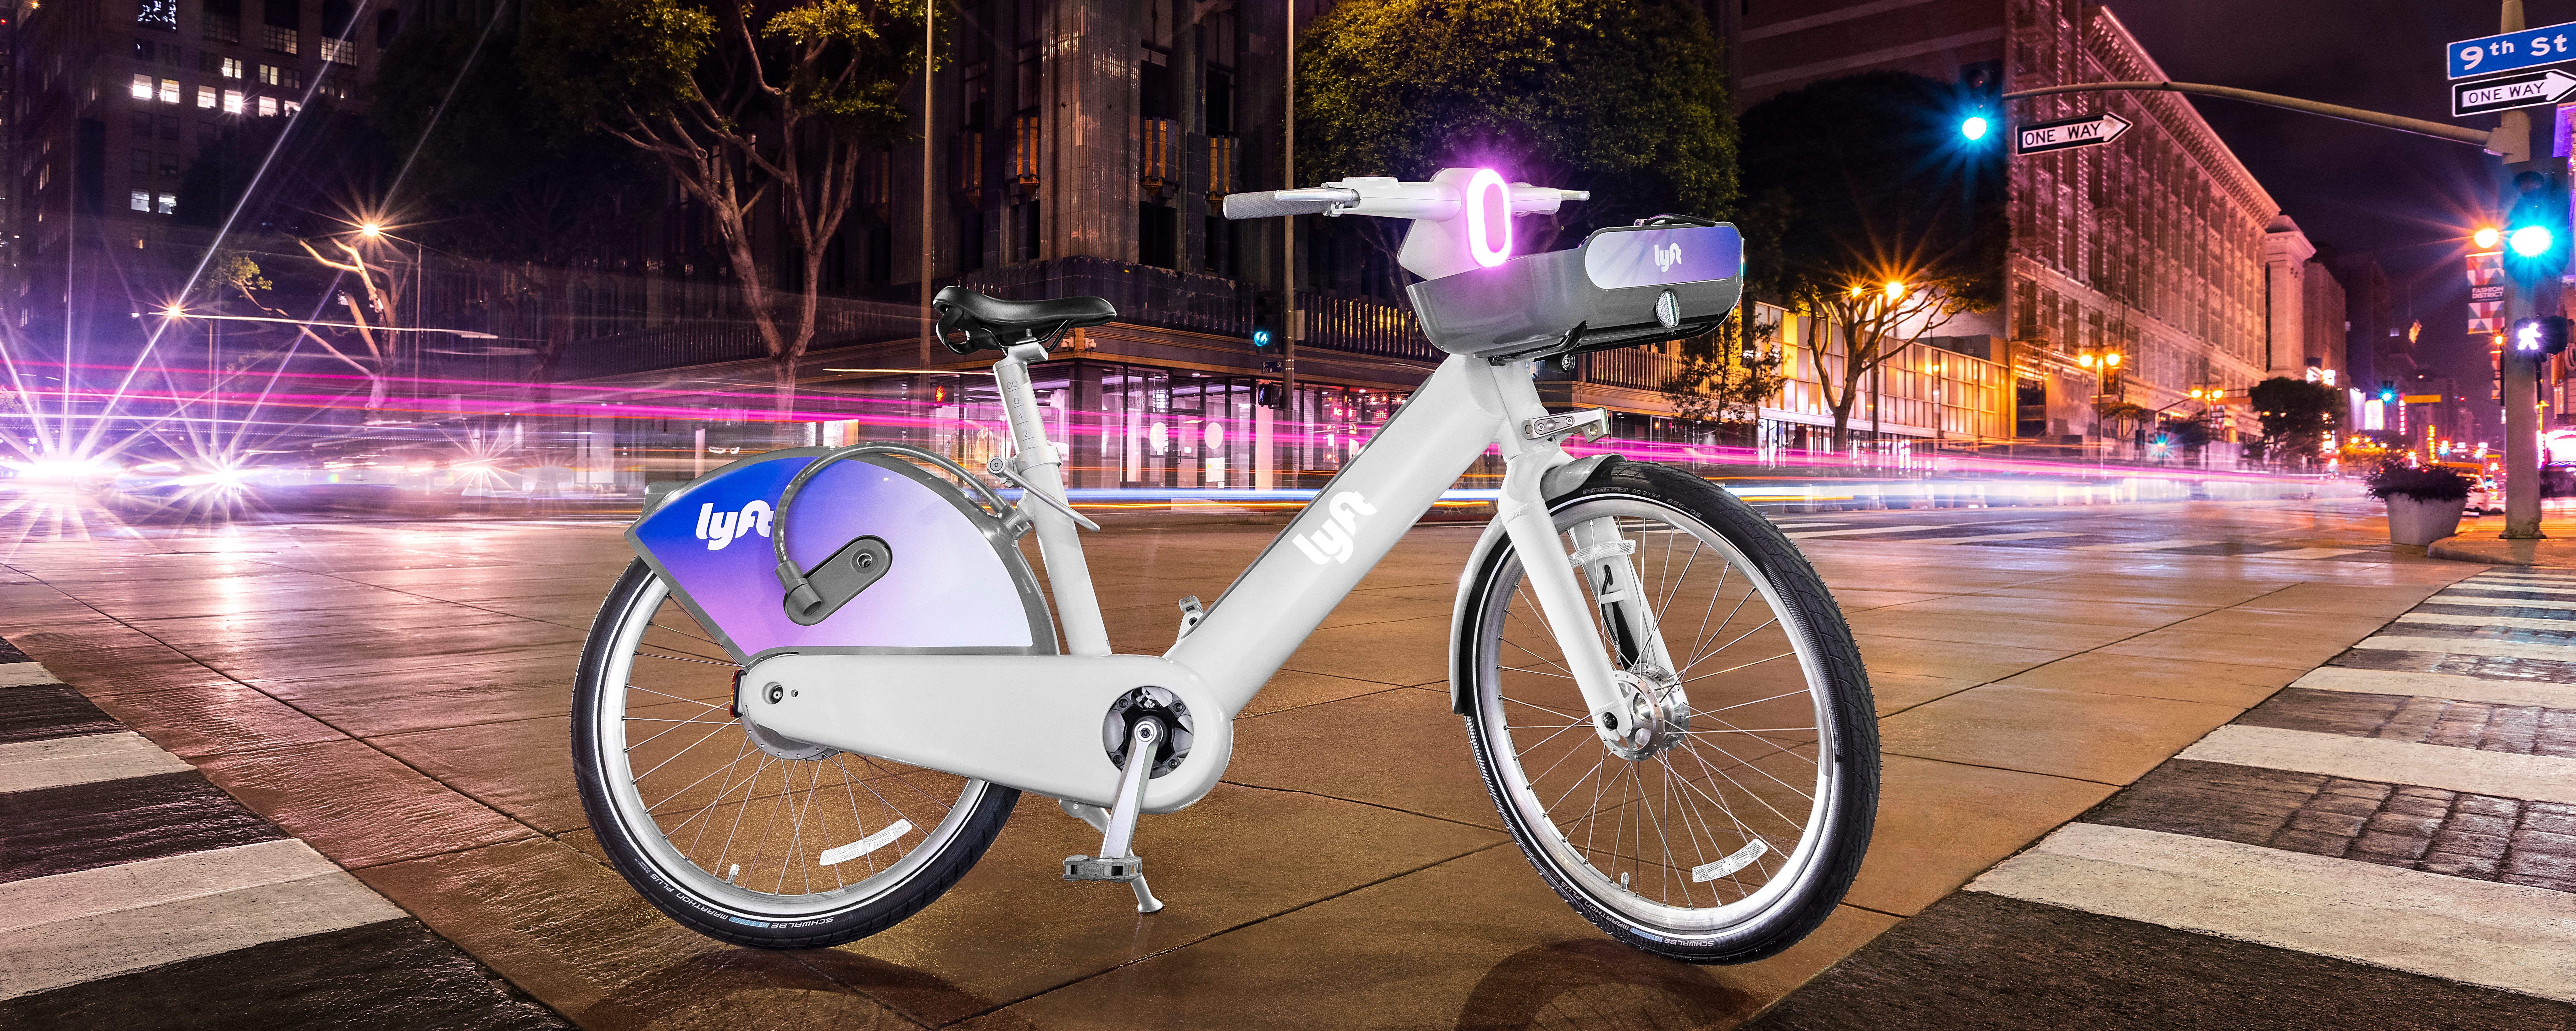 Designed to be seen, the new Lyft ebike has been given a retroreflective paint job and various lighting effects